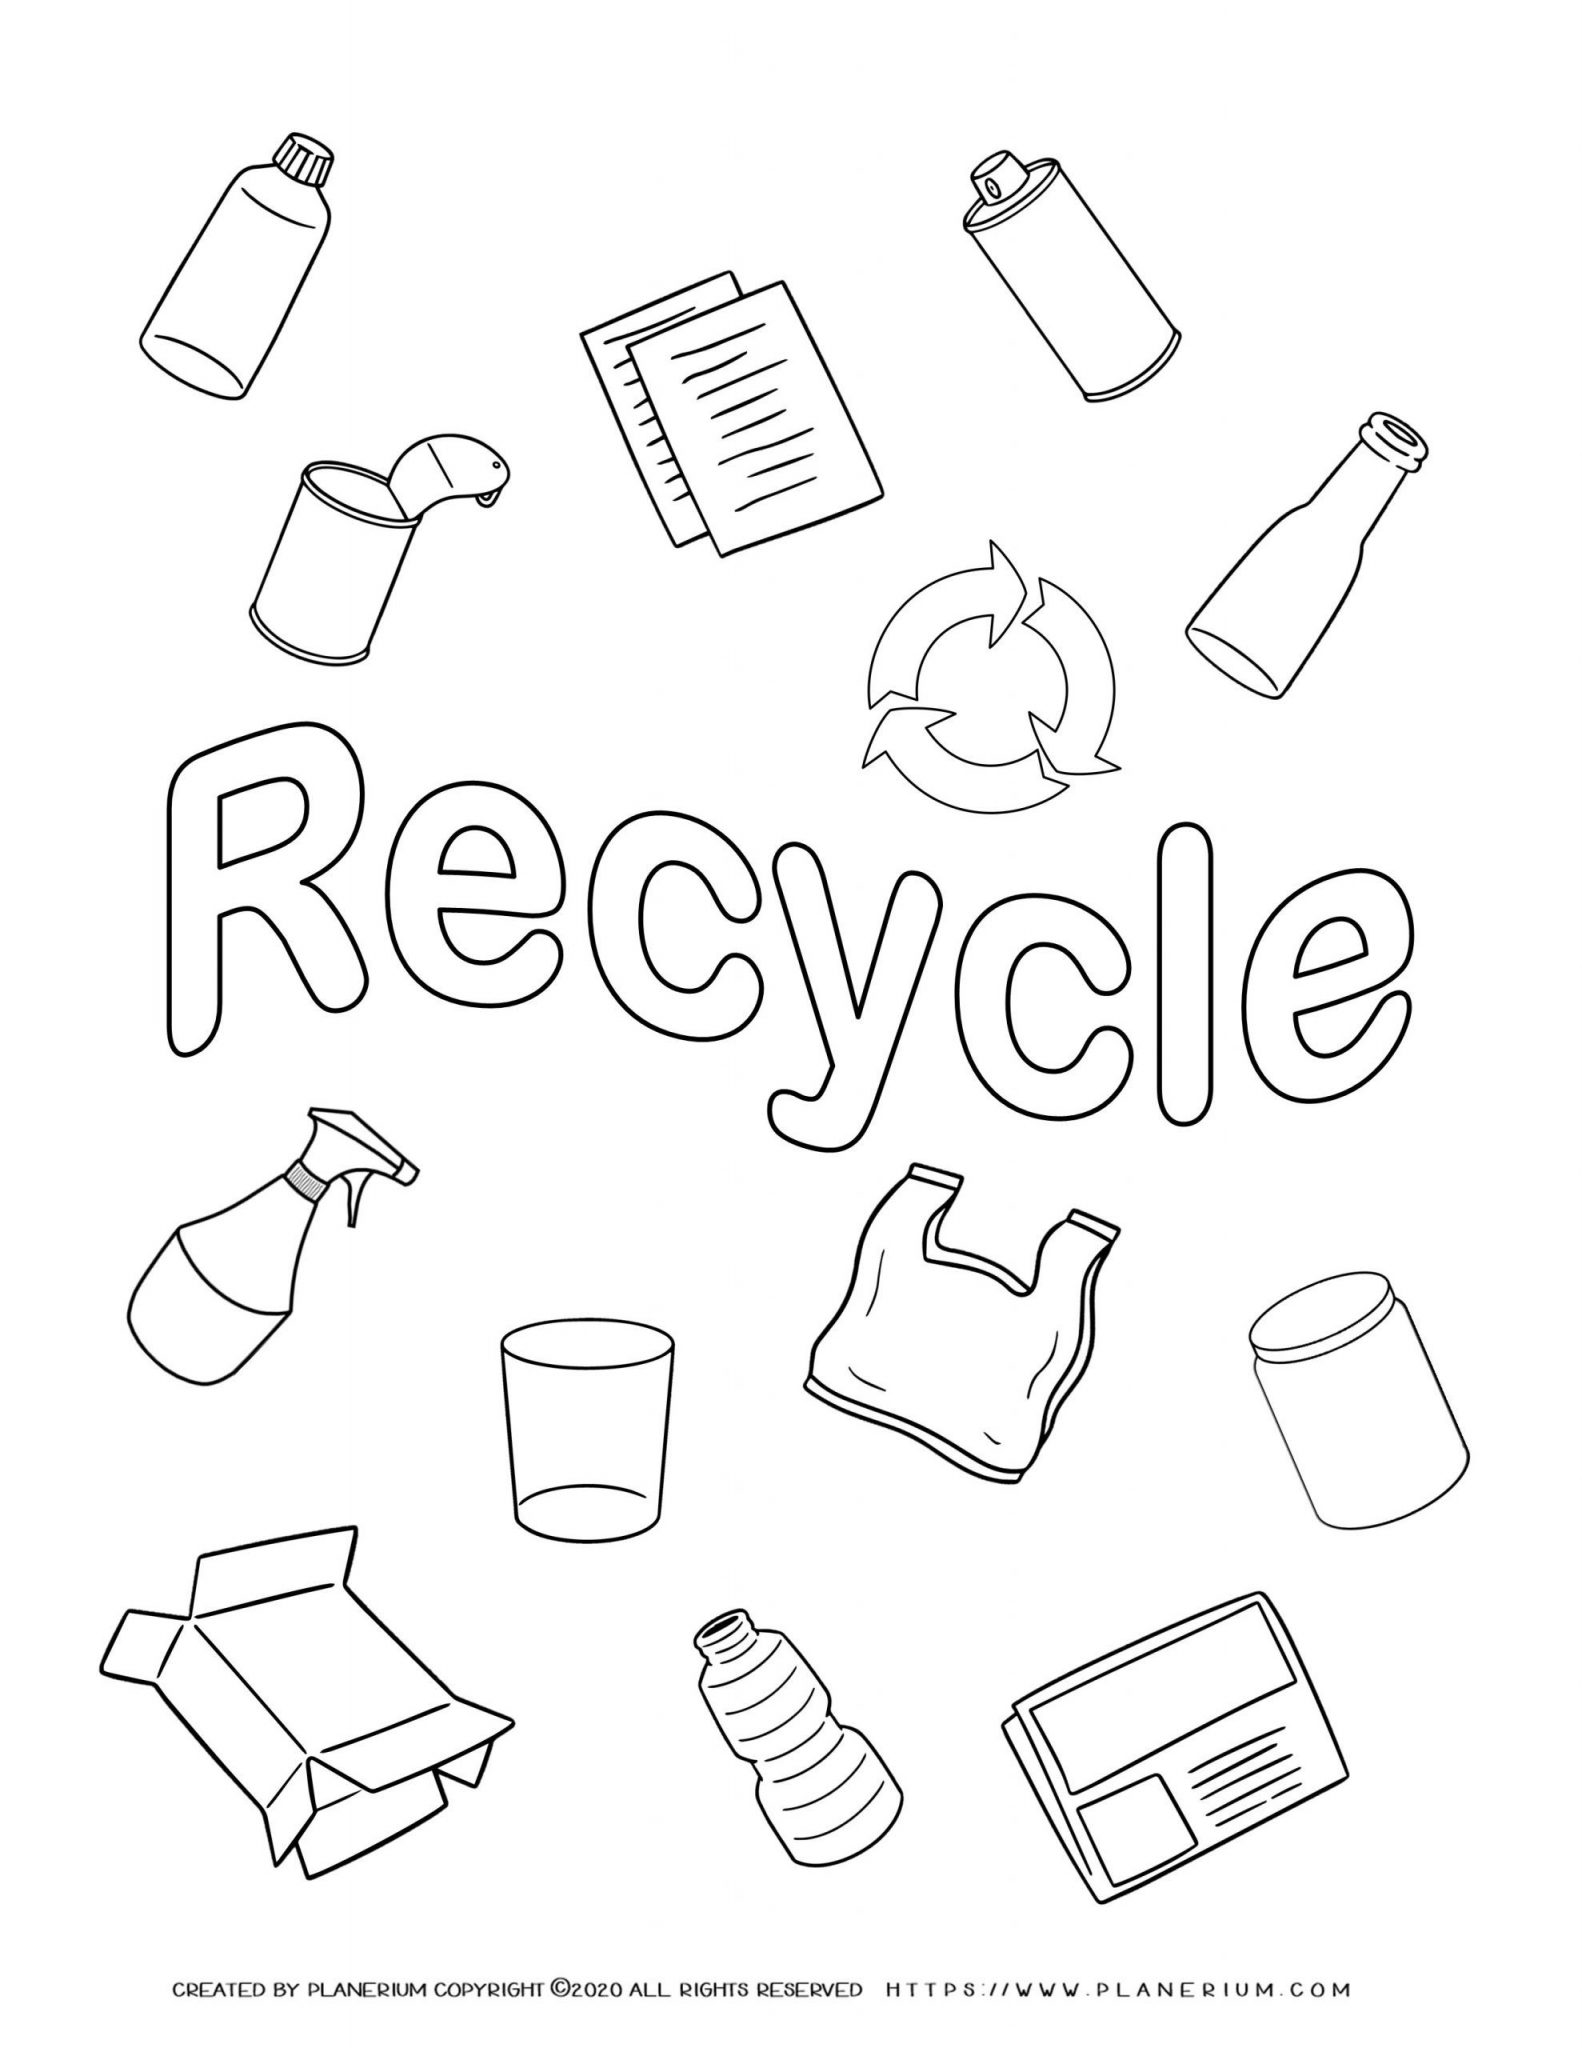 Earth day - Coloring page - Recycled items